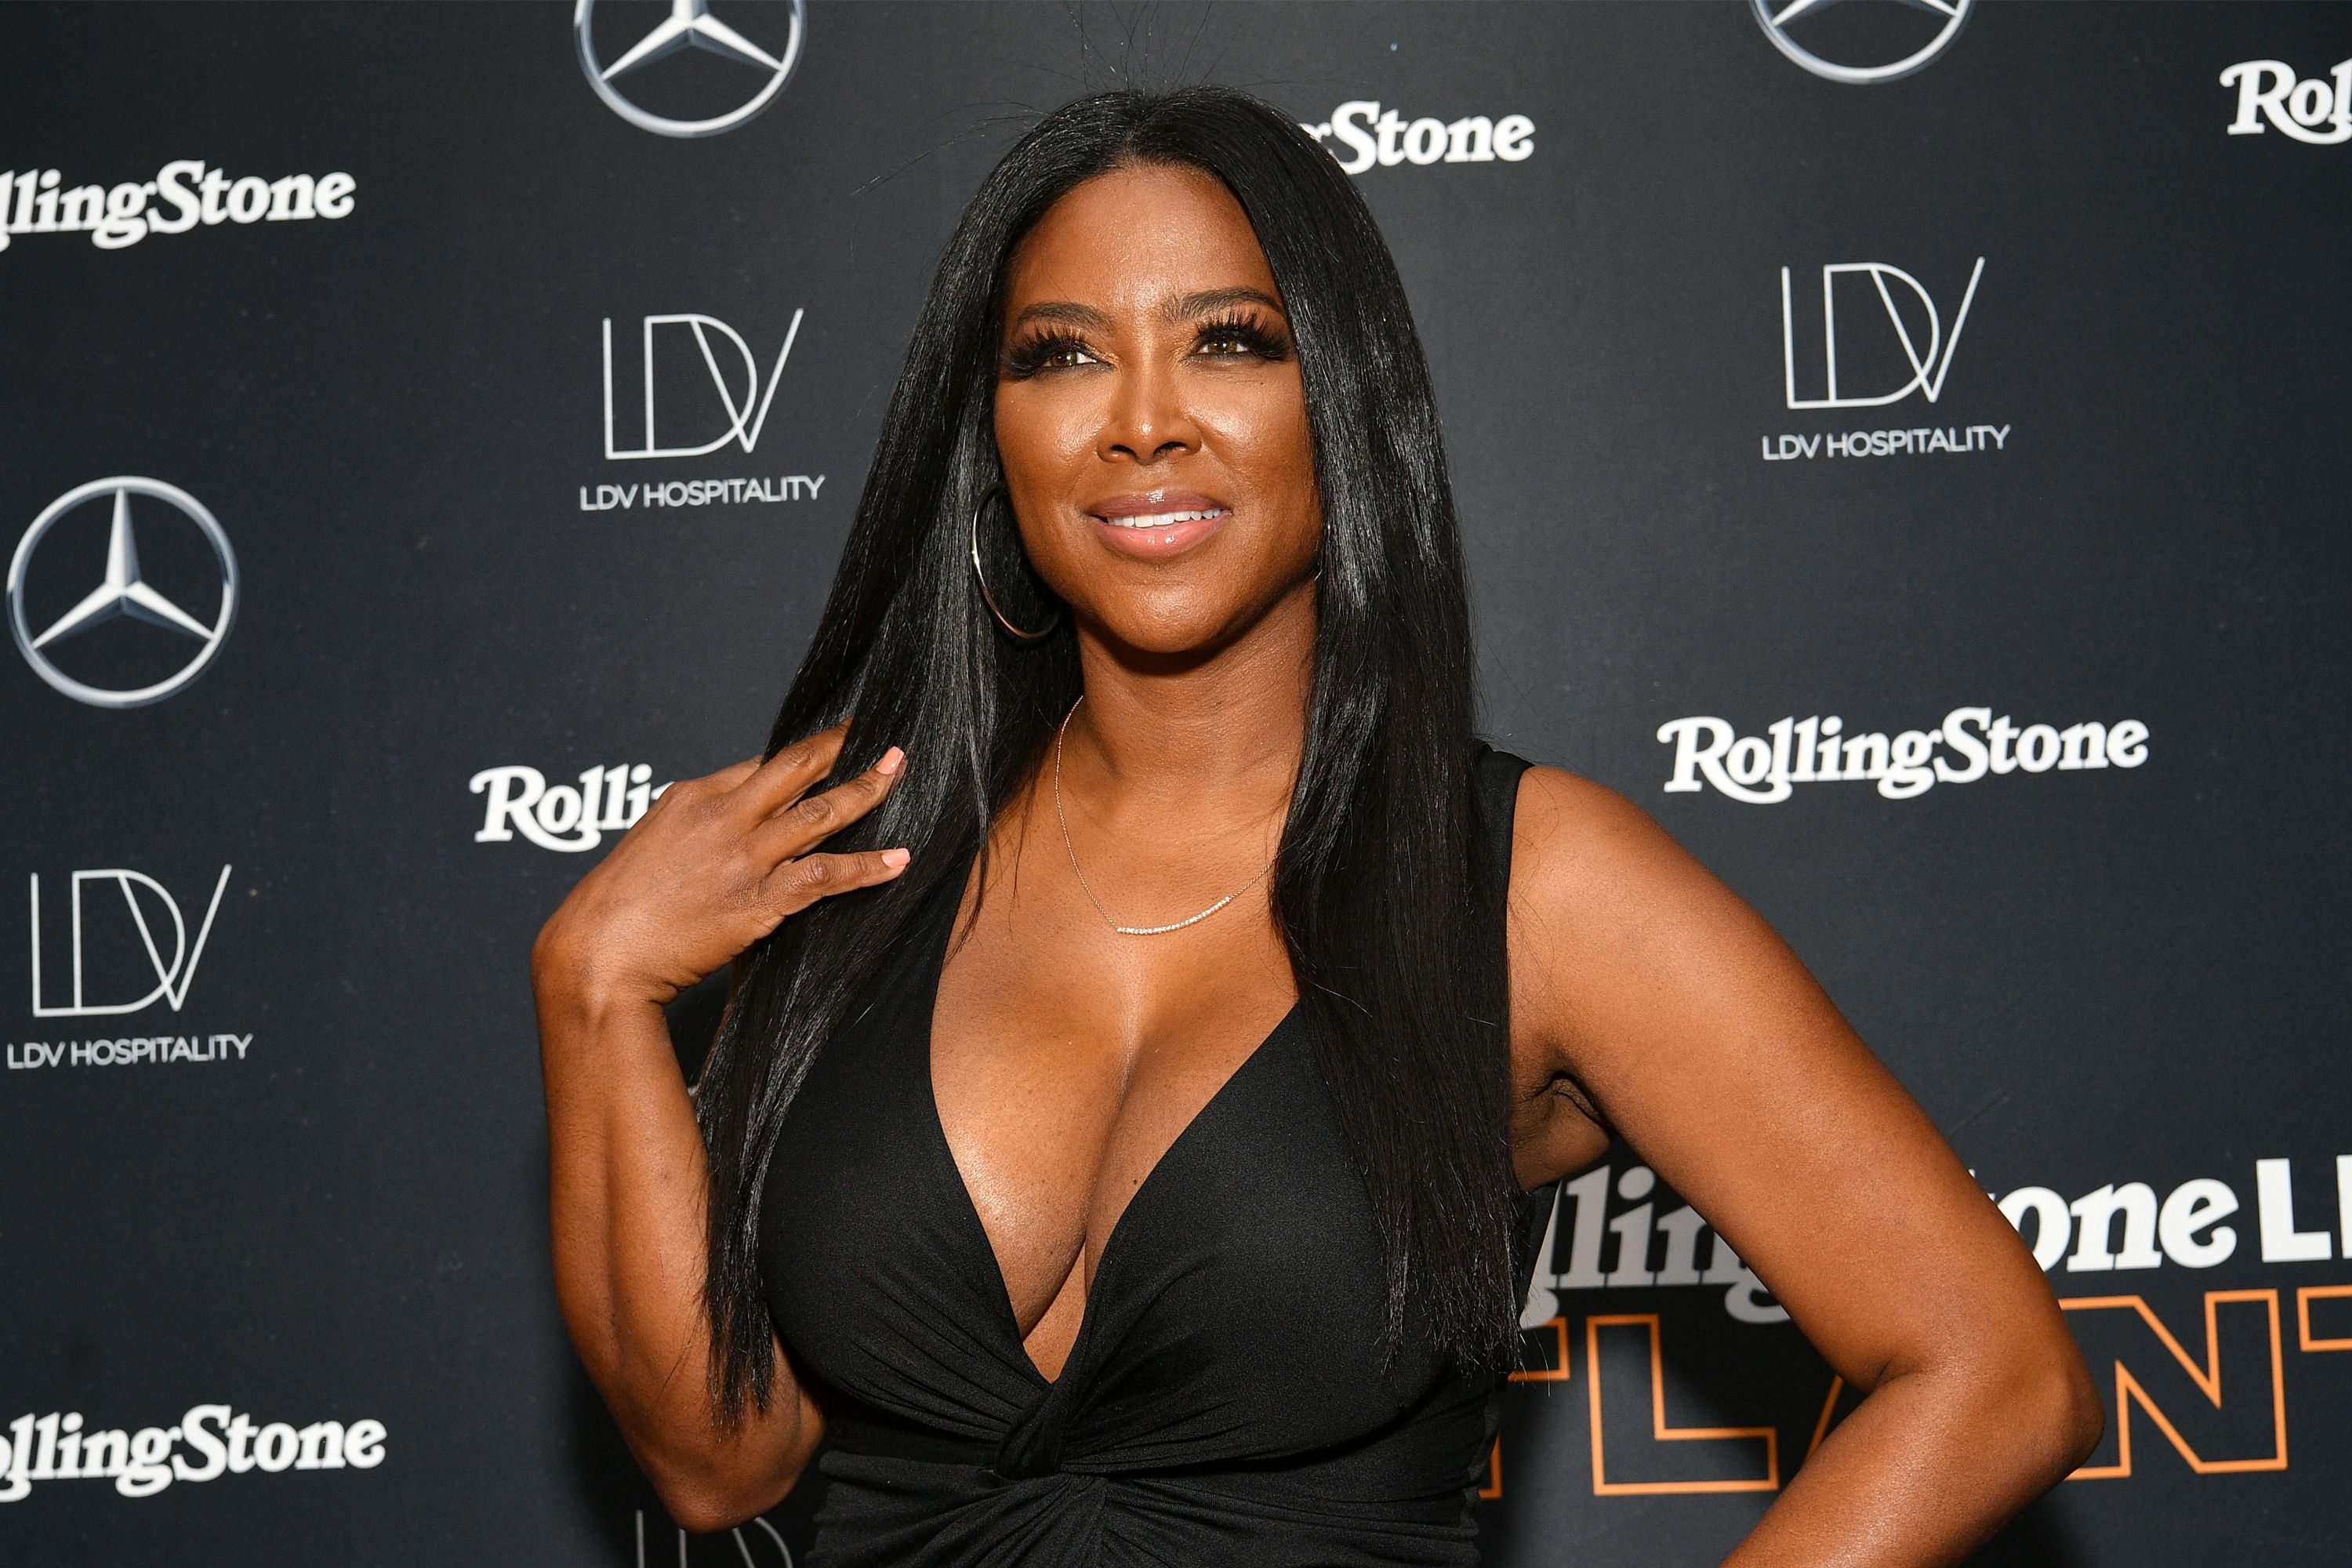 Kenya Moore looks amazing in this black dress that leaves nothing to imagination at an event.